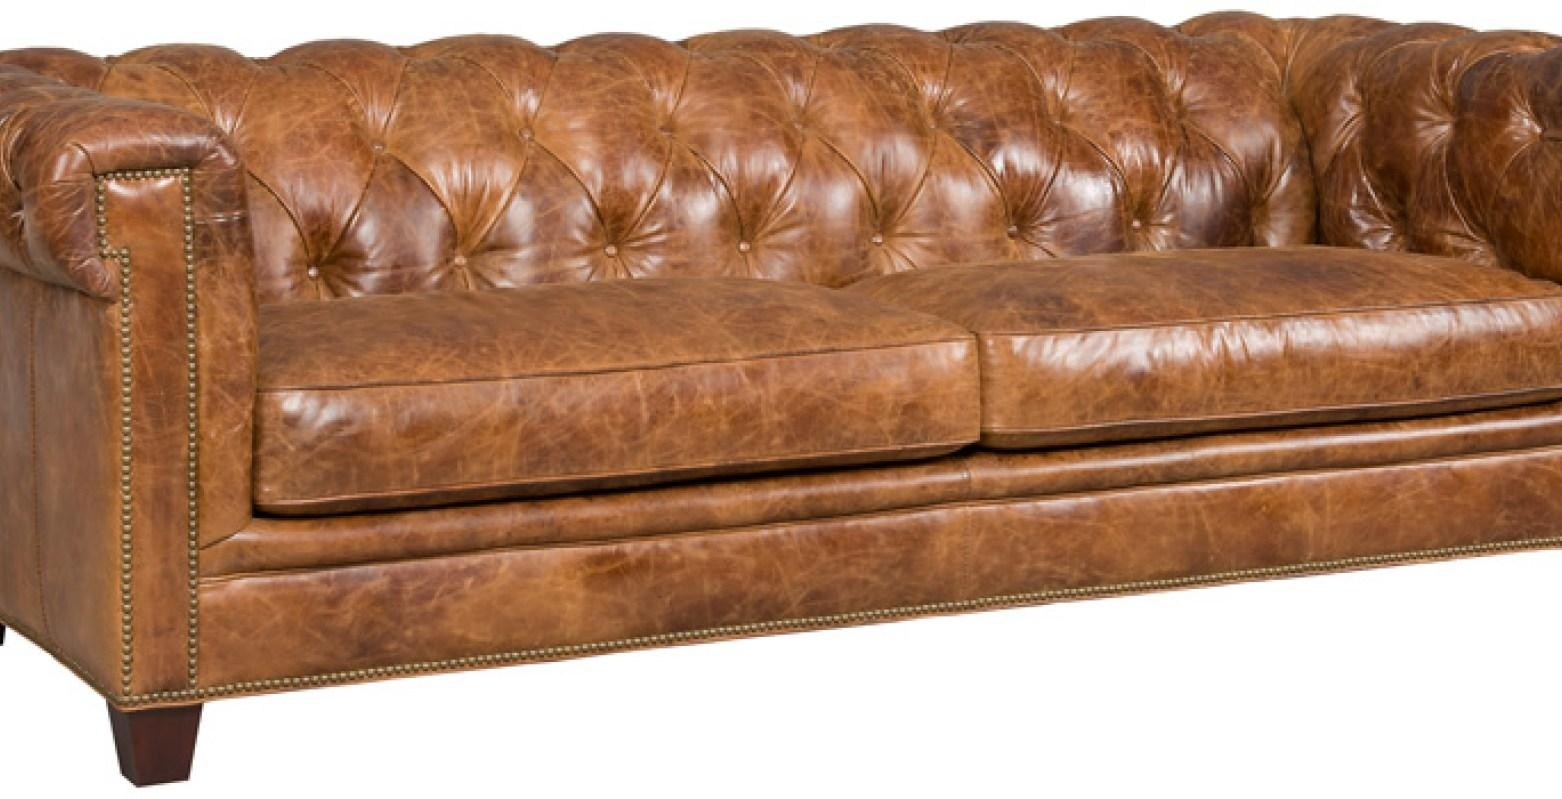 Sofa : Distressed Brown Leather Sectional Sofa (Image 13 of 20)